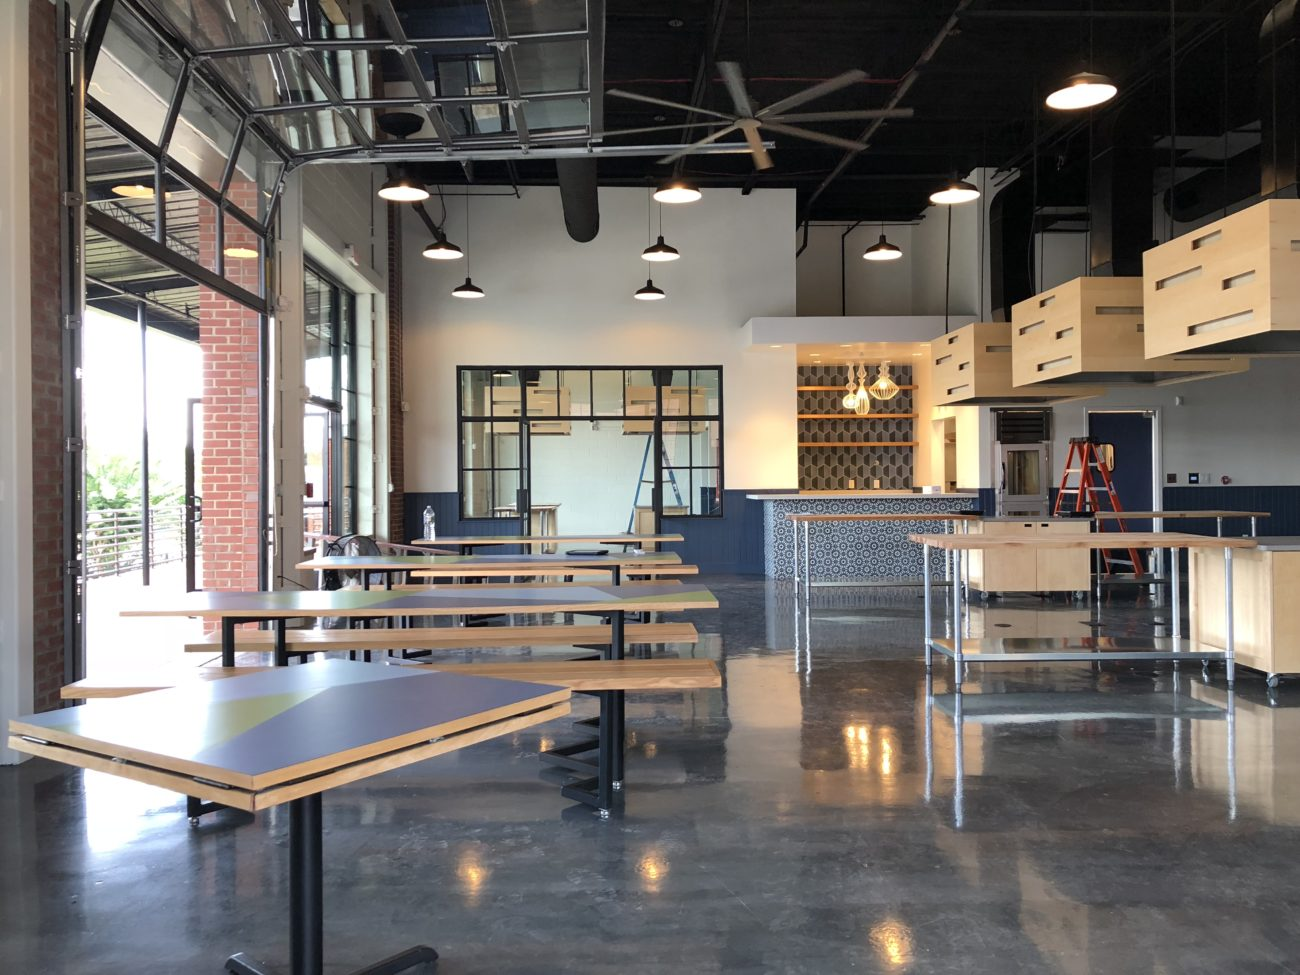 See inside the new Chef Alyssa's Kitchen, targeting a late August open date in Lower South End